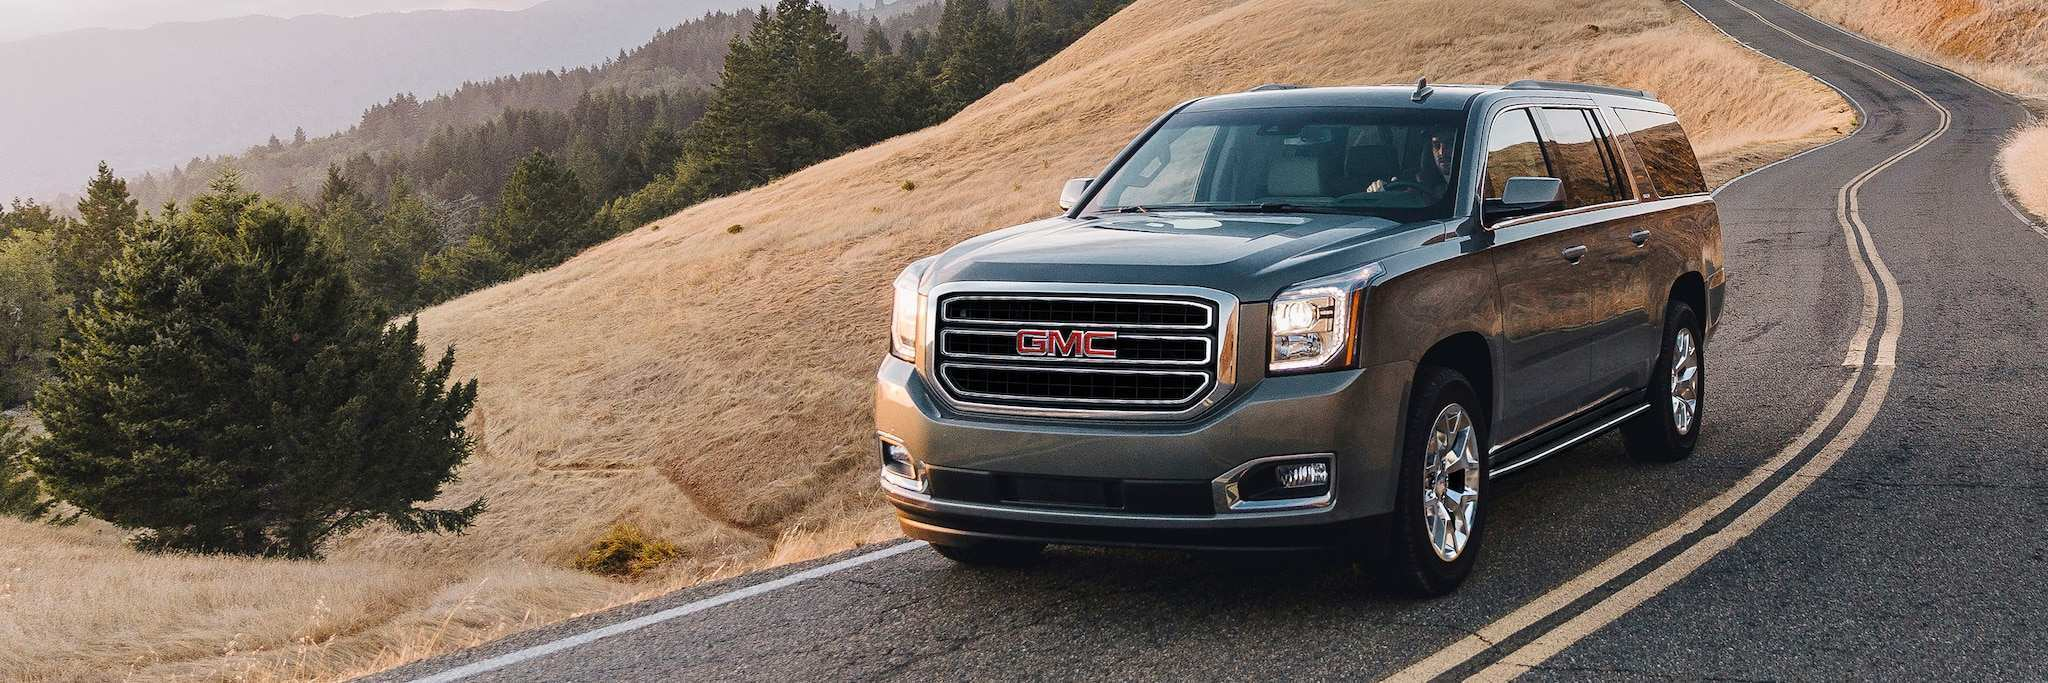 83 The Best Chevrolet Yukon 2020 Redesign And Concept